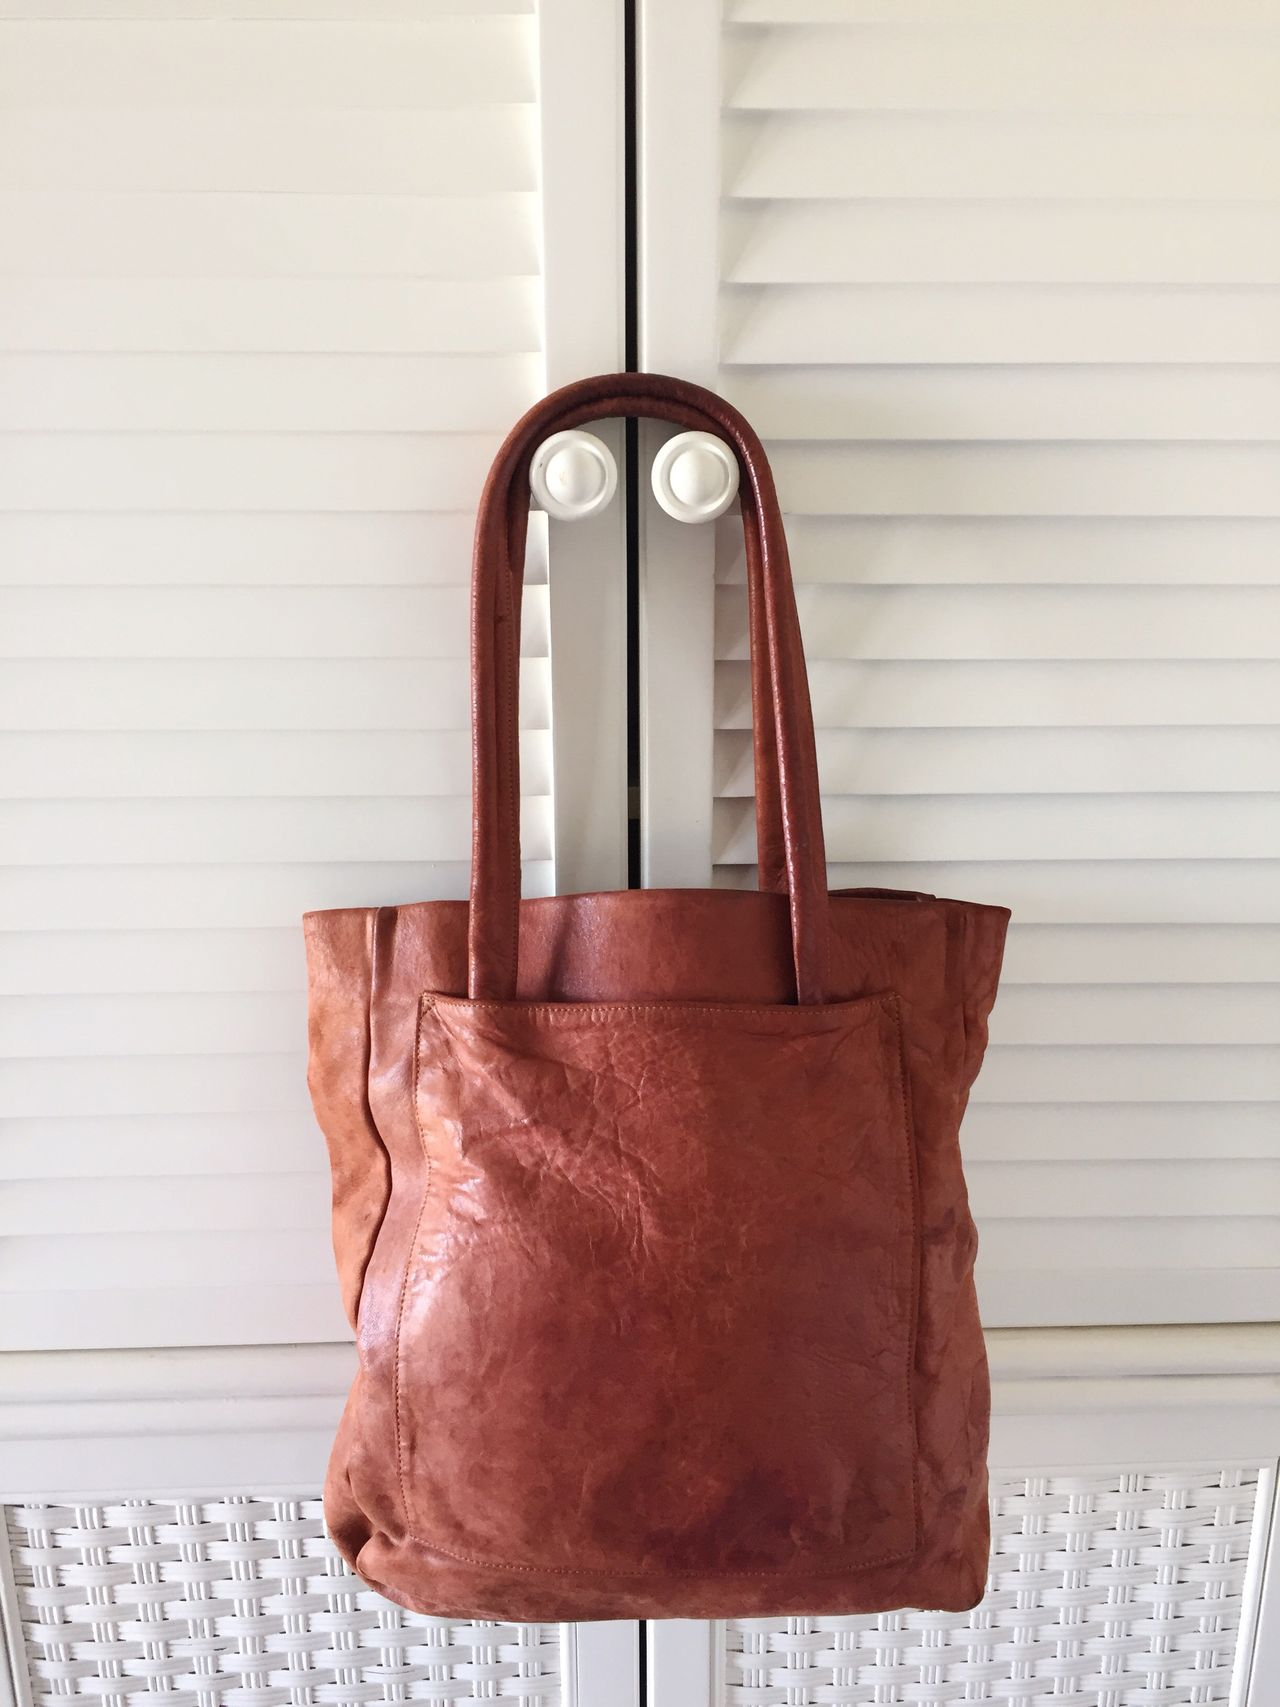 Vintage leather tote bag Indoors  No People Vintage Totebag Purse Leather Bag Leather Brown Hanging Close-up Day